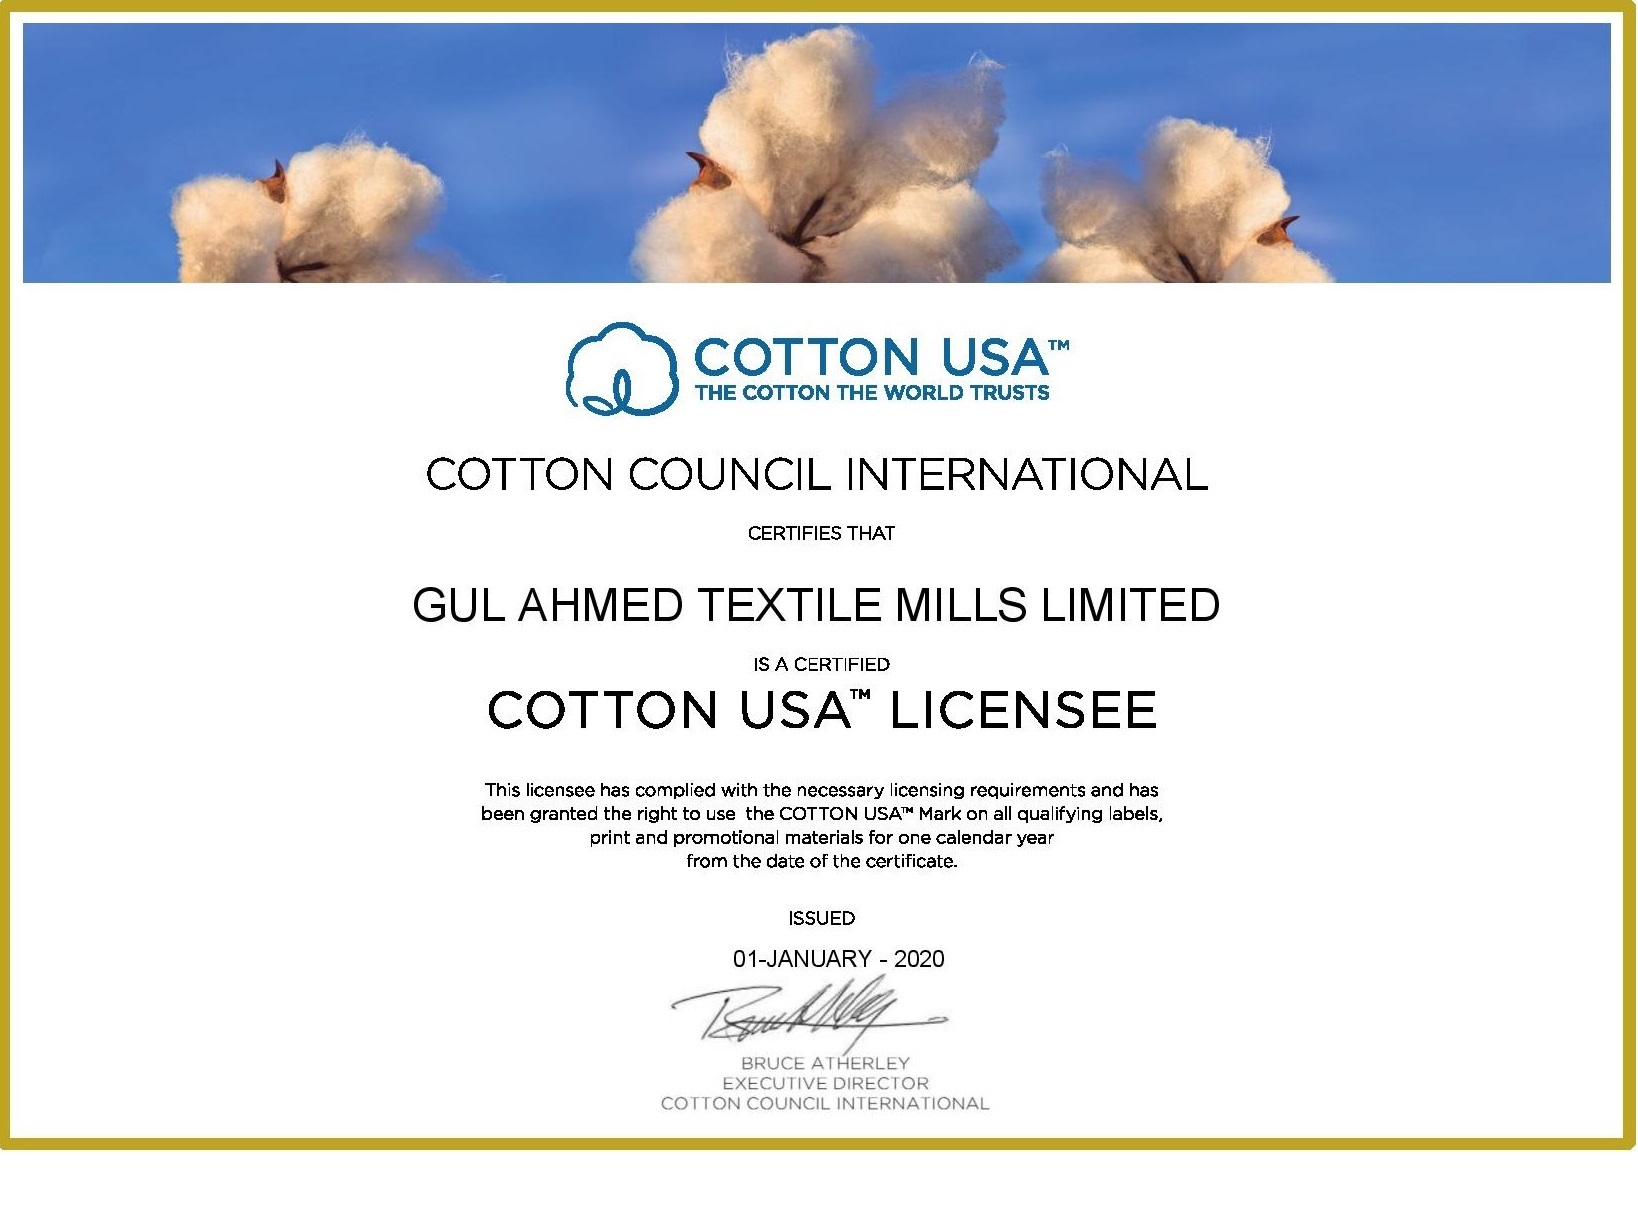 Cotton USA Licensing Certificate